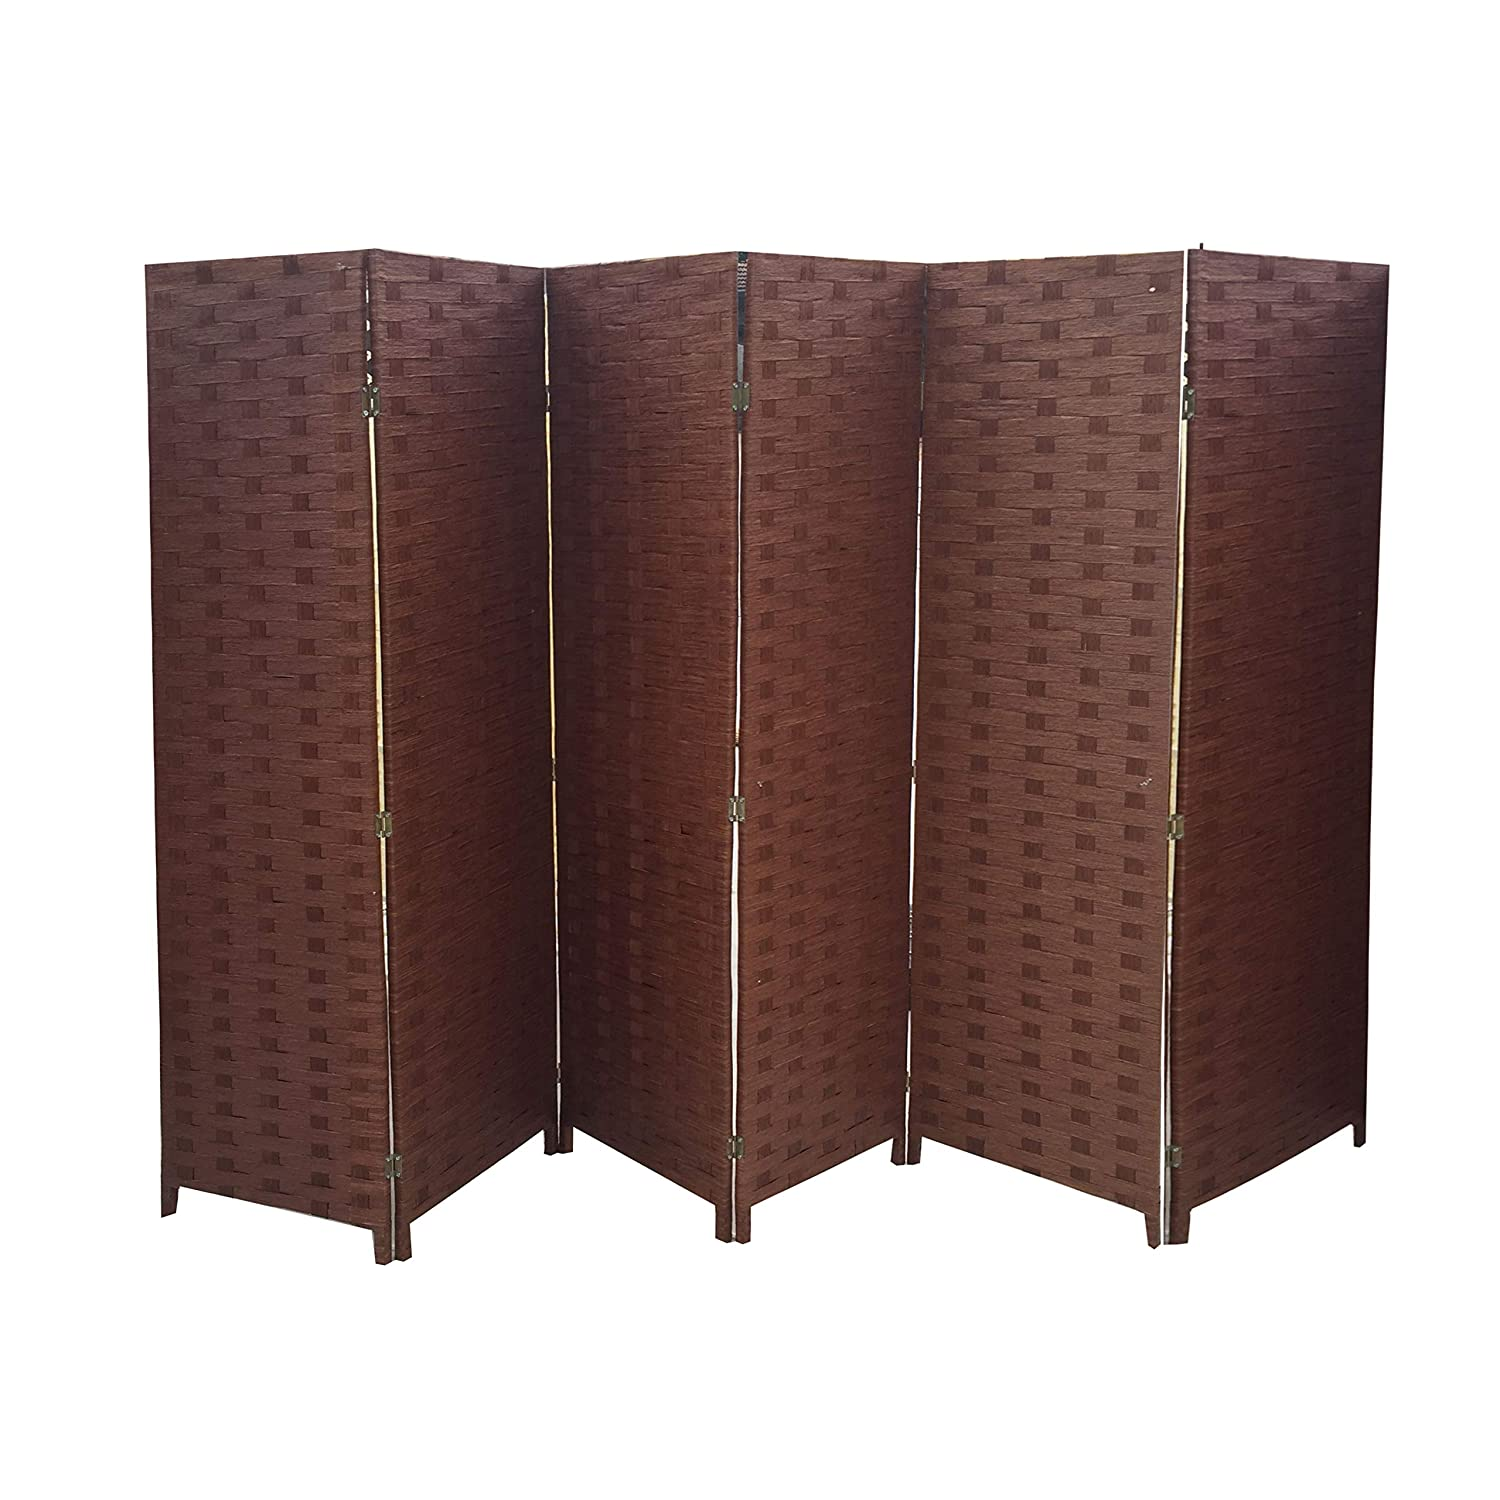 Ballino Hand Made Wicker Room Divider/Partition/Privacy Screen, Wood, dark Brown, 240 x 5 x 170 cm 3/4/5/6 panel room divider partitions 3 colors (3panel brown012)